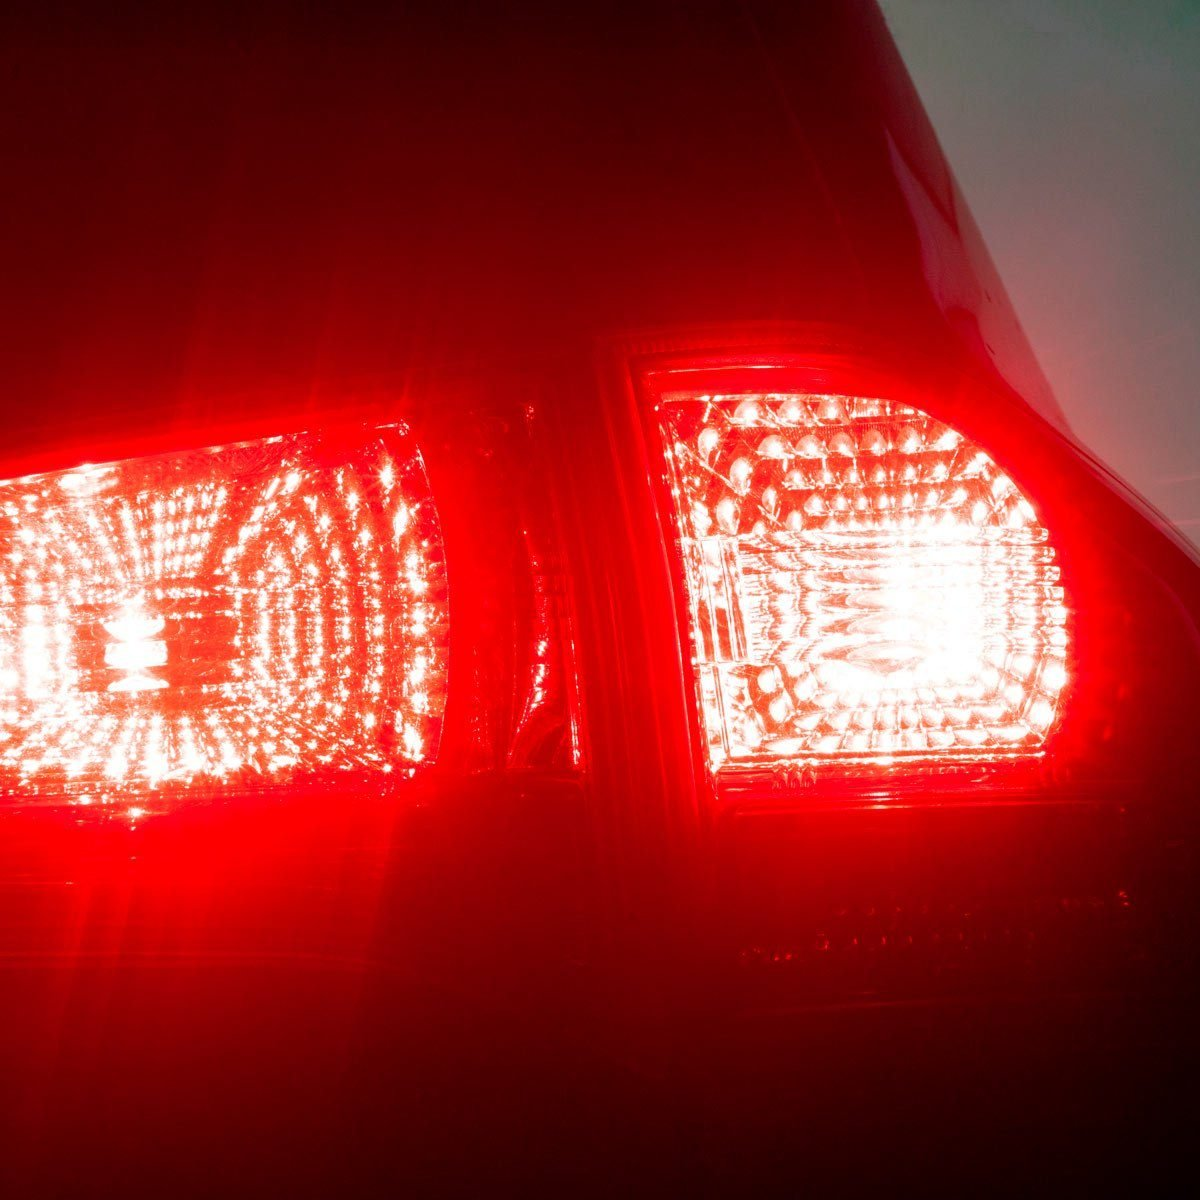 car brake light illuminated